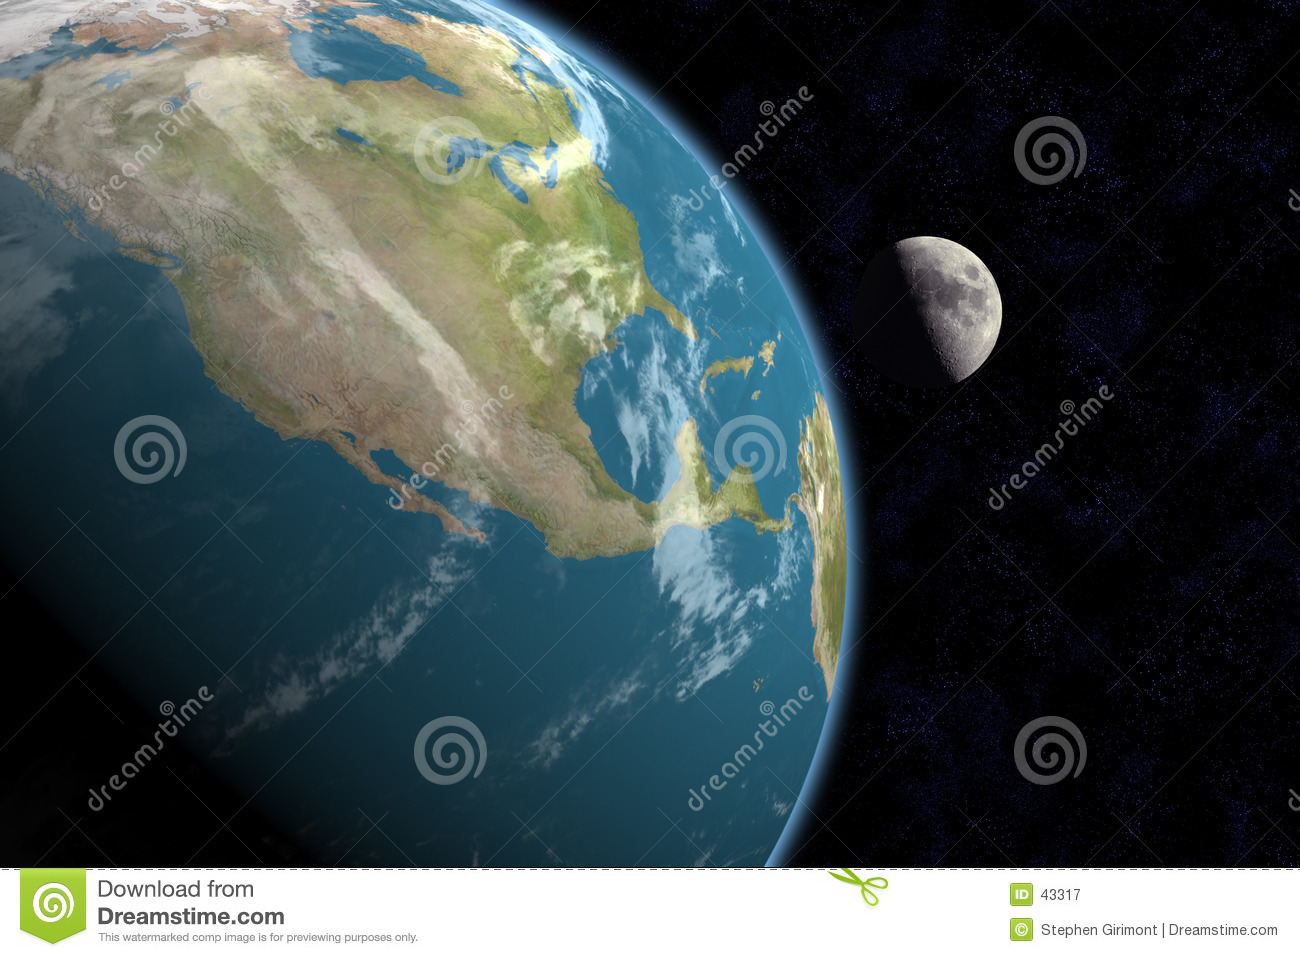 North America and Moon, with Stars